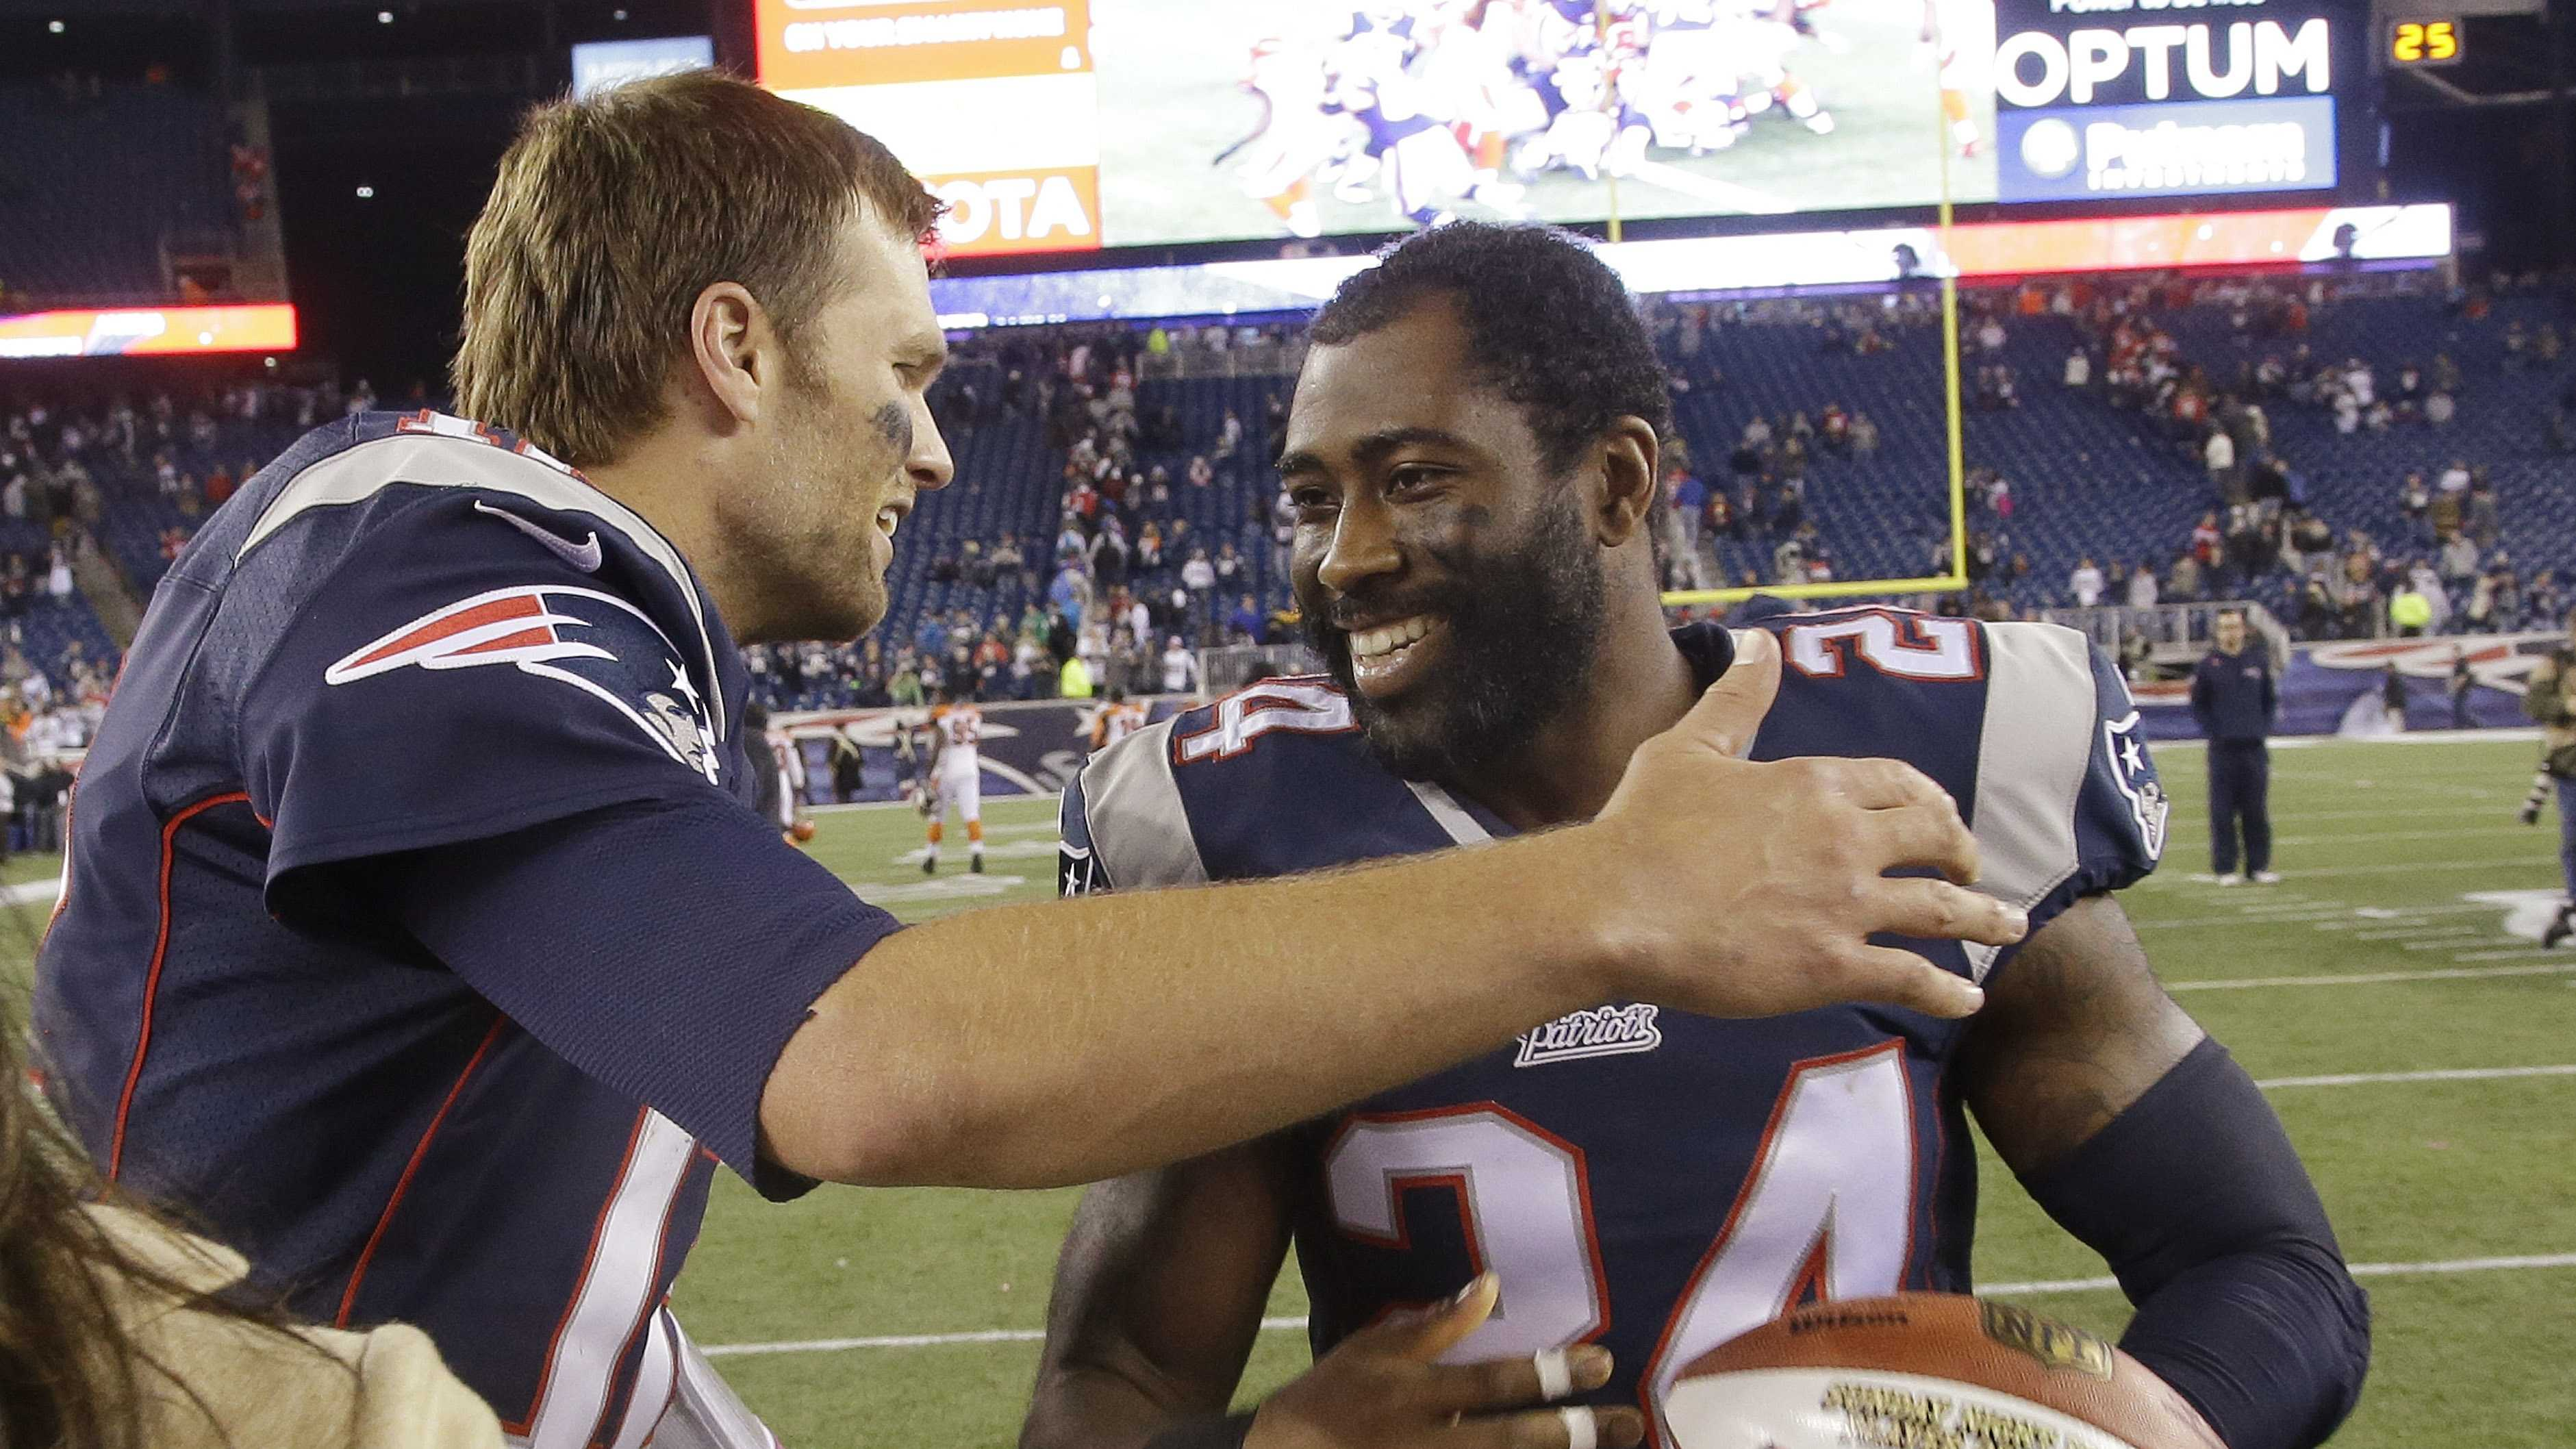 New England Patriots quarterback Tom Brady (12) hugs cornerback Darrelle Revis (24) after their NFL football game against the Cincinnati Bengals Sunday, Oct. 5, 2014, in Foxborough, Mass.